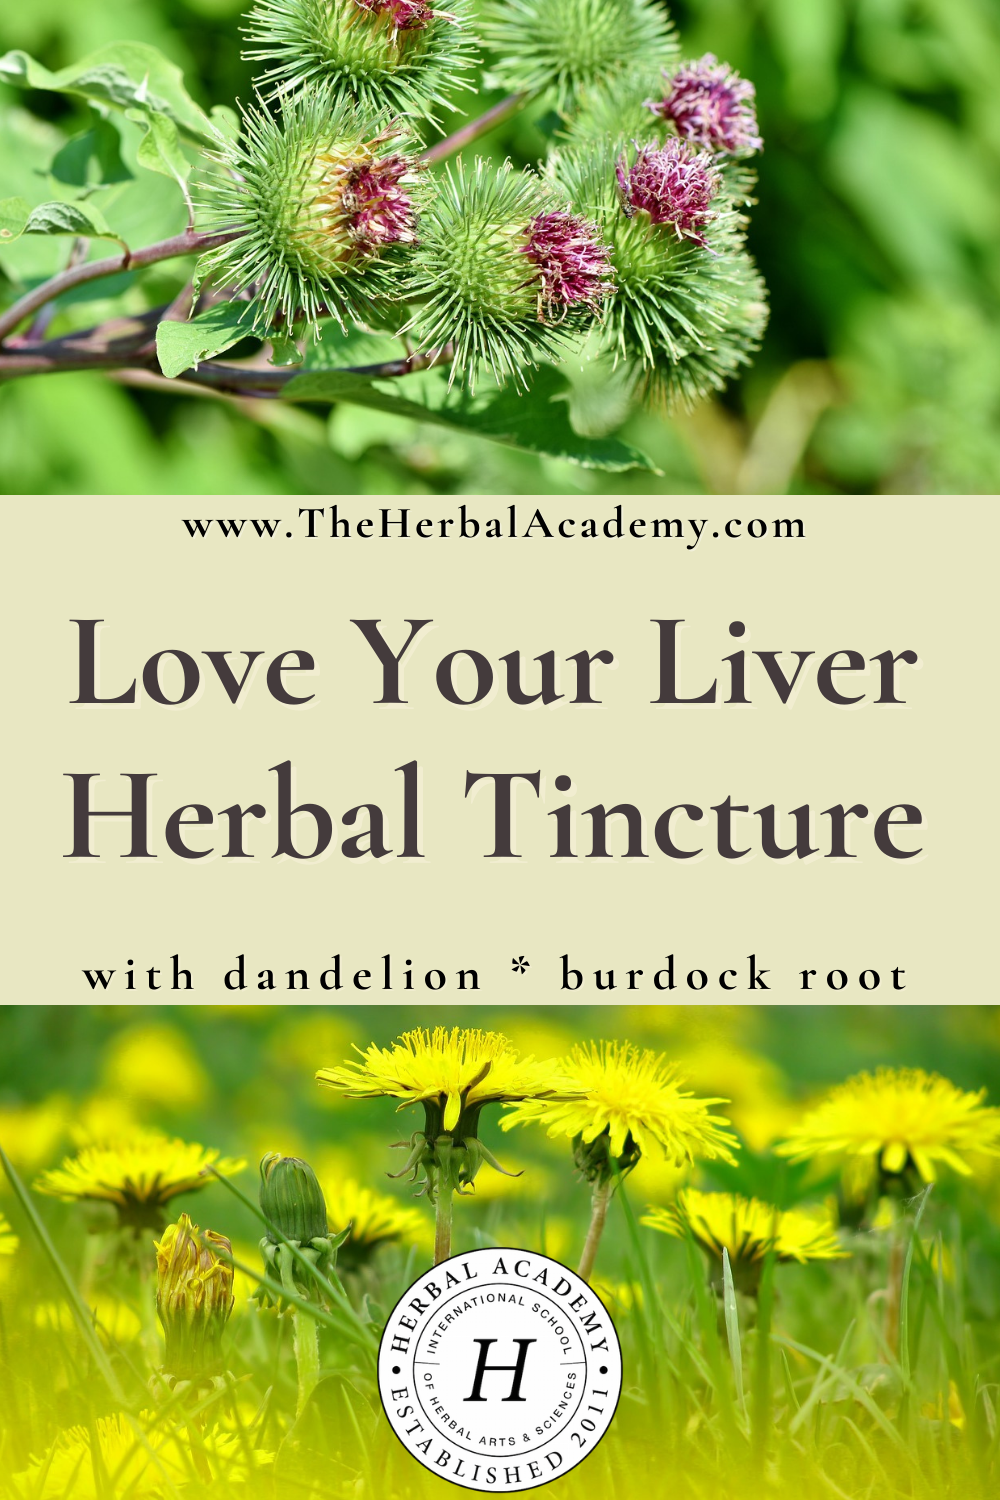 Love Your Liver Herbal Tincture | Herbal Academy | Exposure to chemicals in the air and water can become taxing on the liver. Check out this liver tincture recipe for healthier liver function.